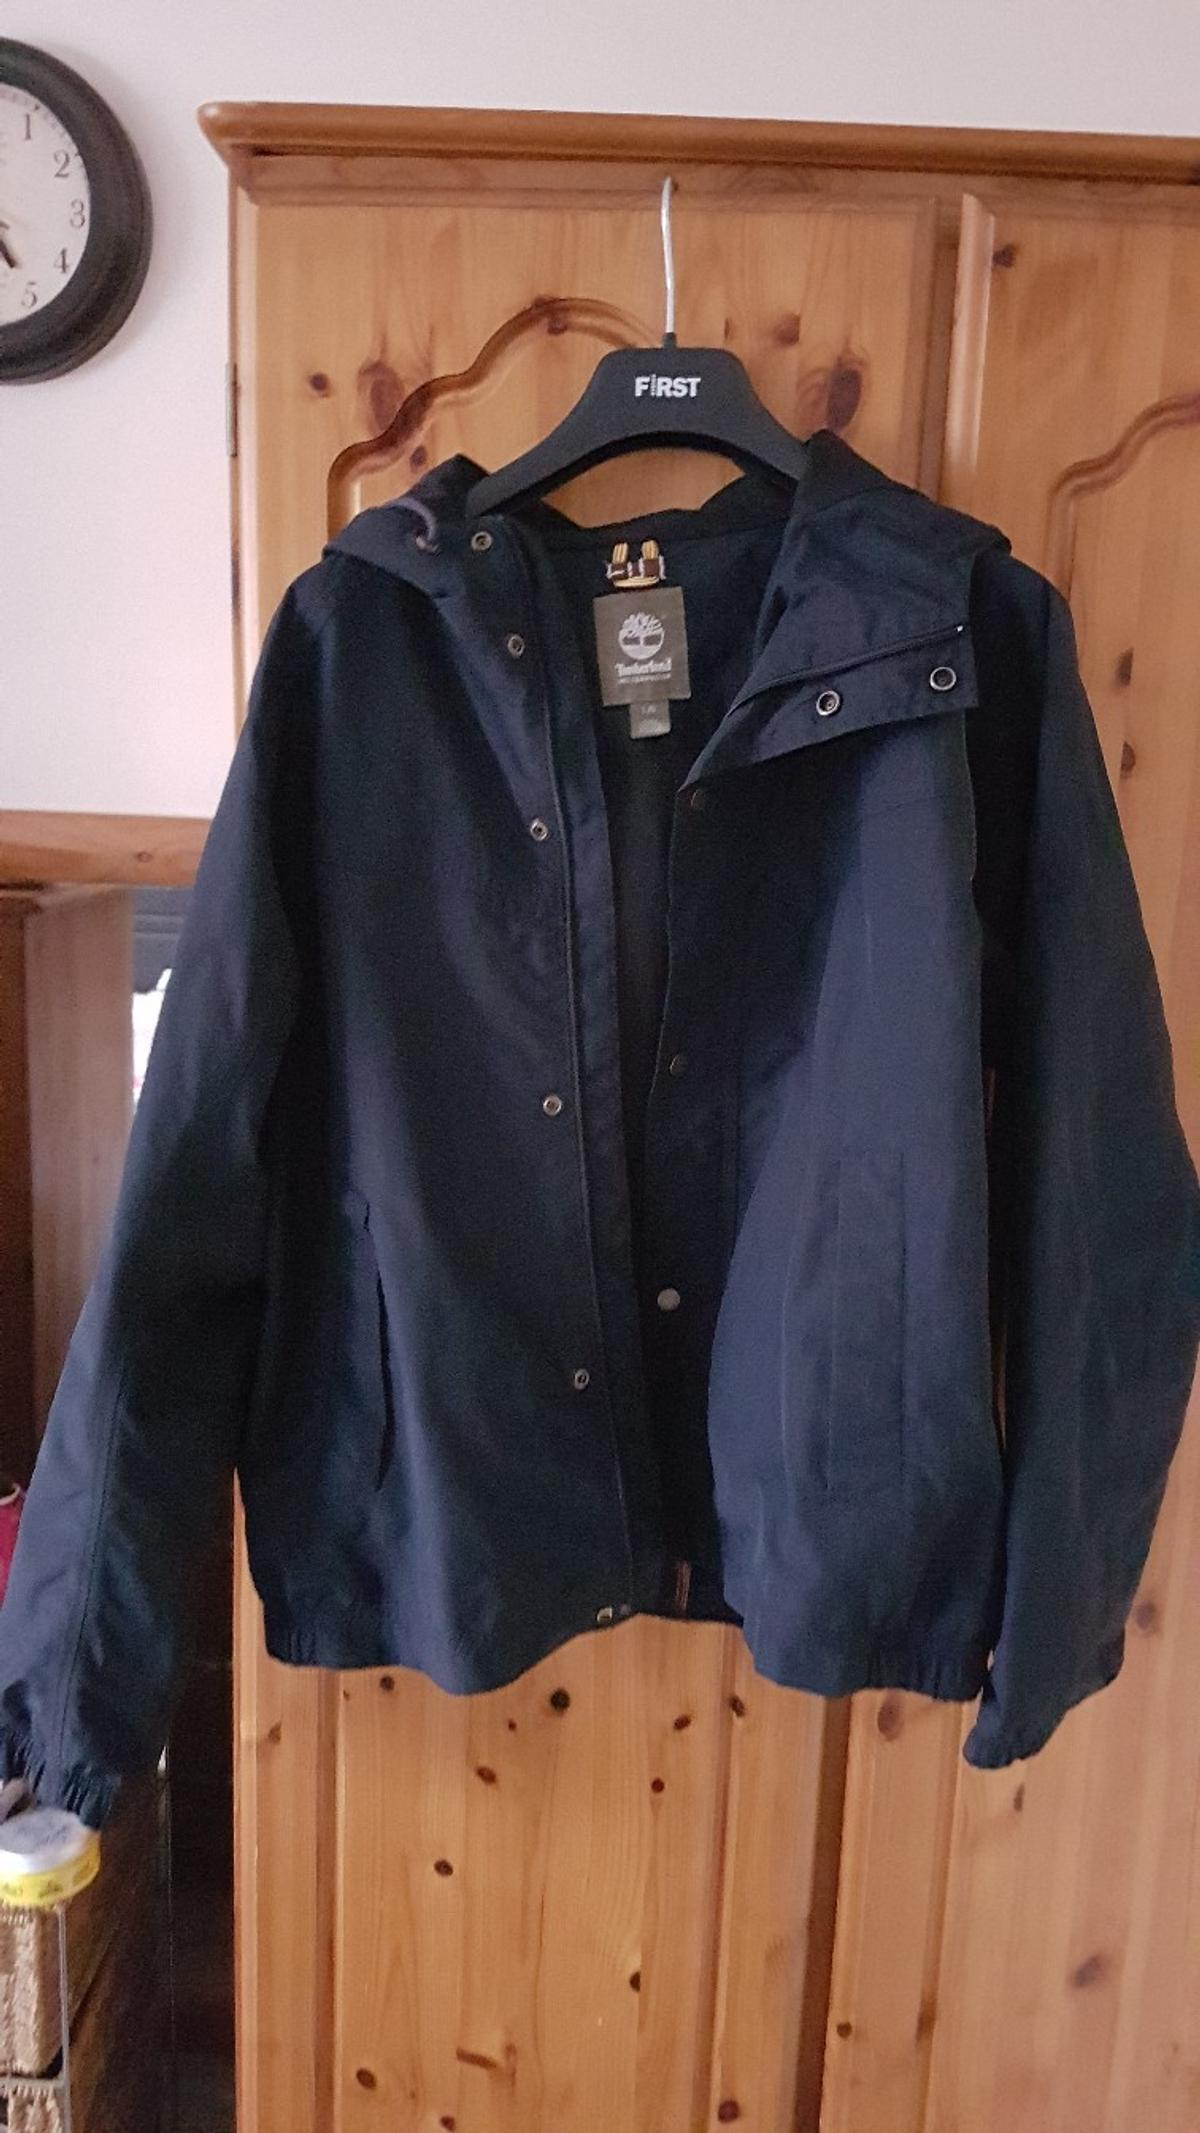 Permuta Comenzar Pavimentación  Timberland Waterproof Jacket in Weymouth and Portland for £30.00 for sale |  Shpock